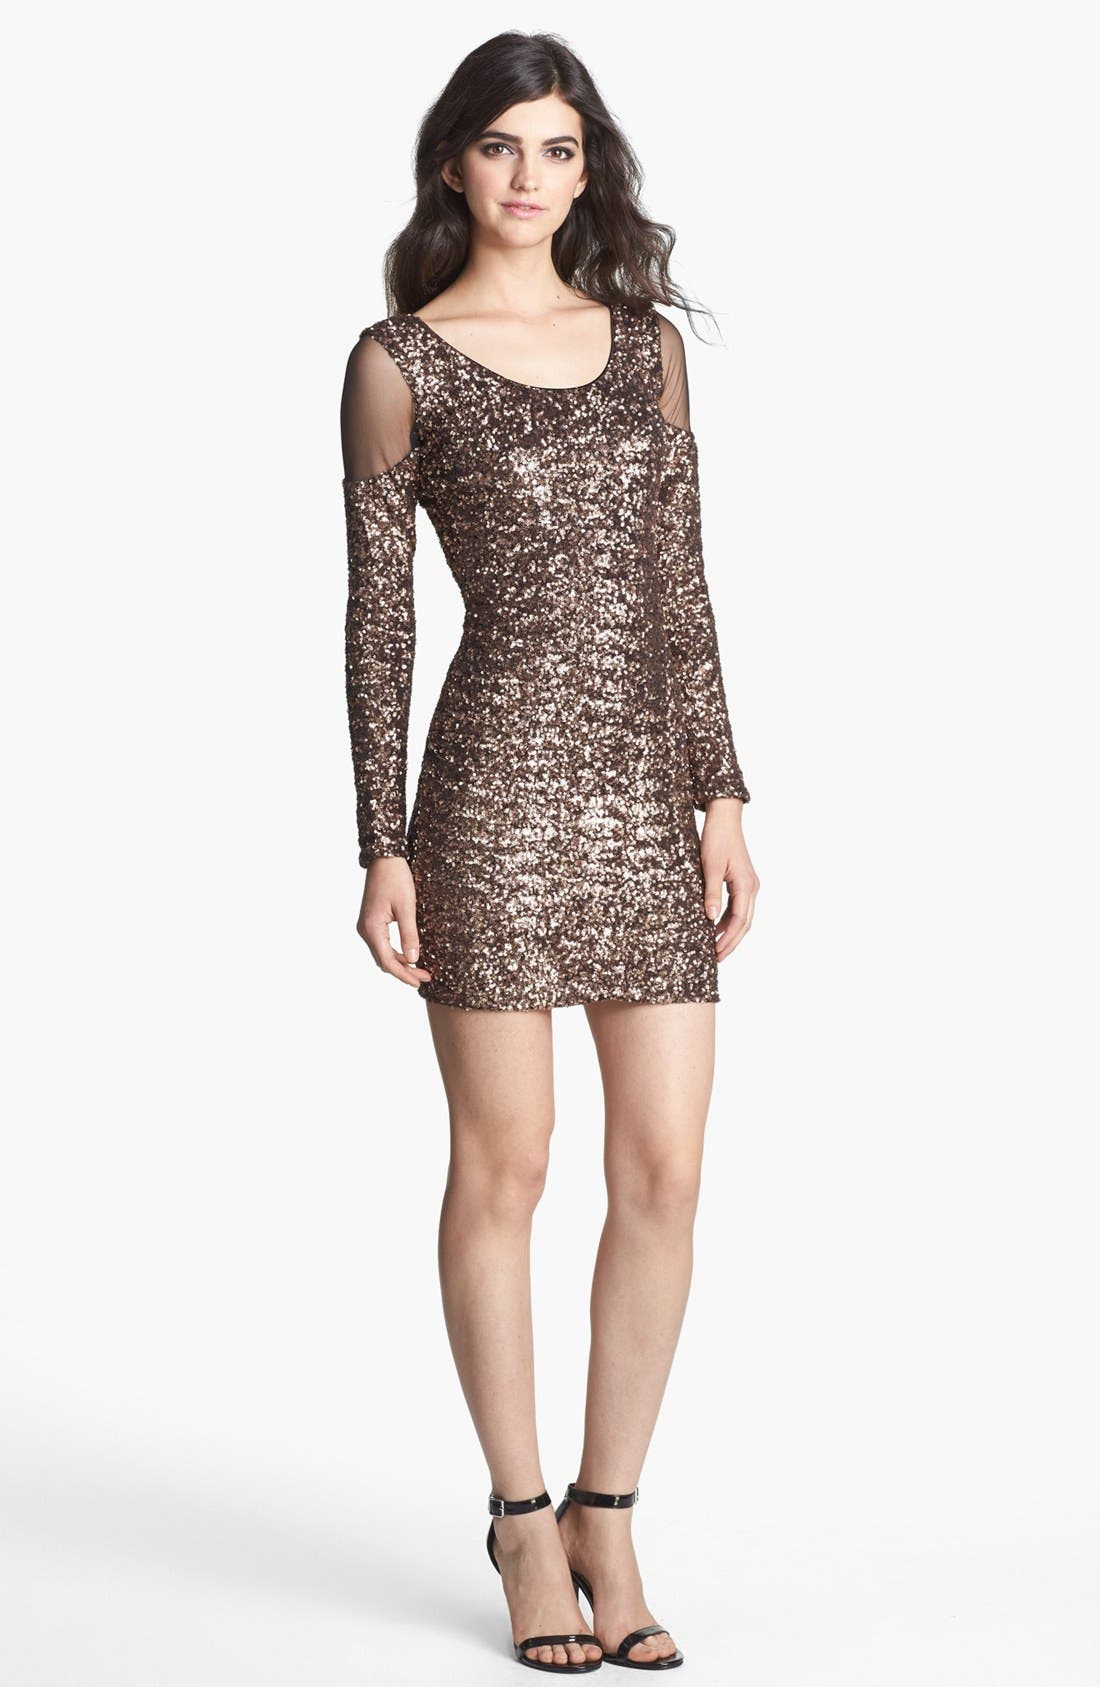 Main Image - Dress the Population 'Jaden' Sequin Body-Con Dress